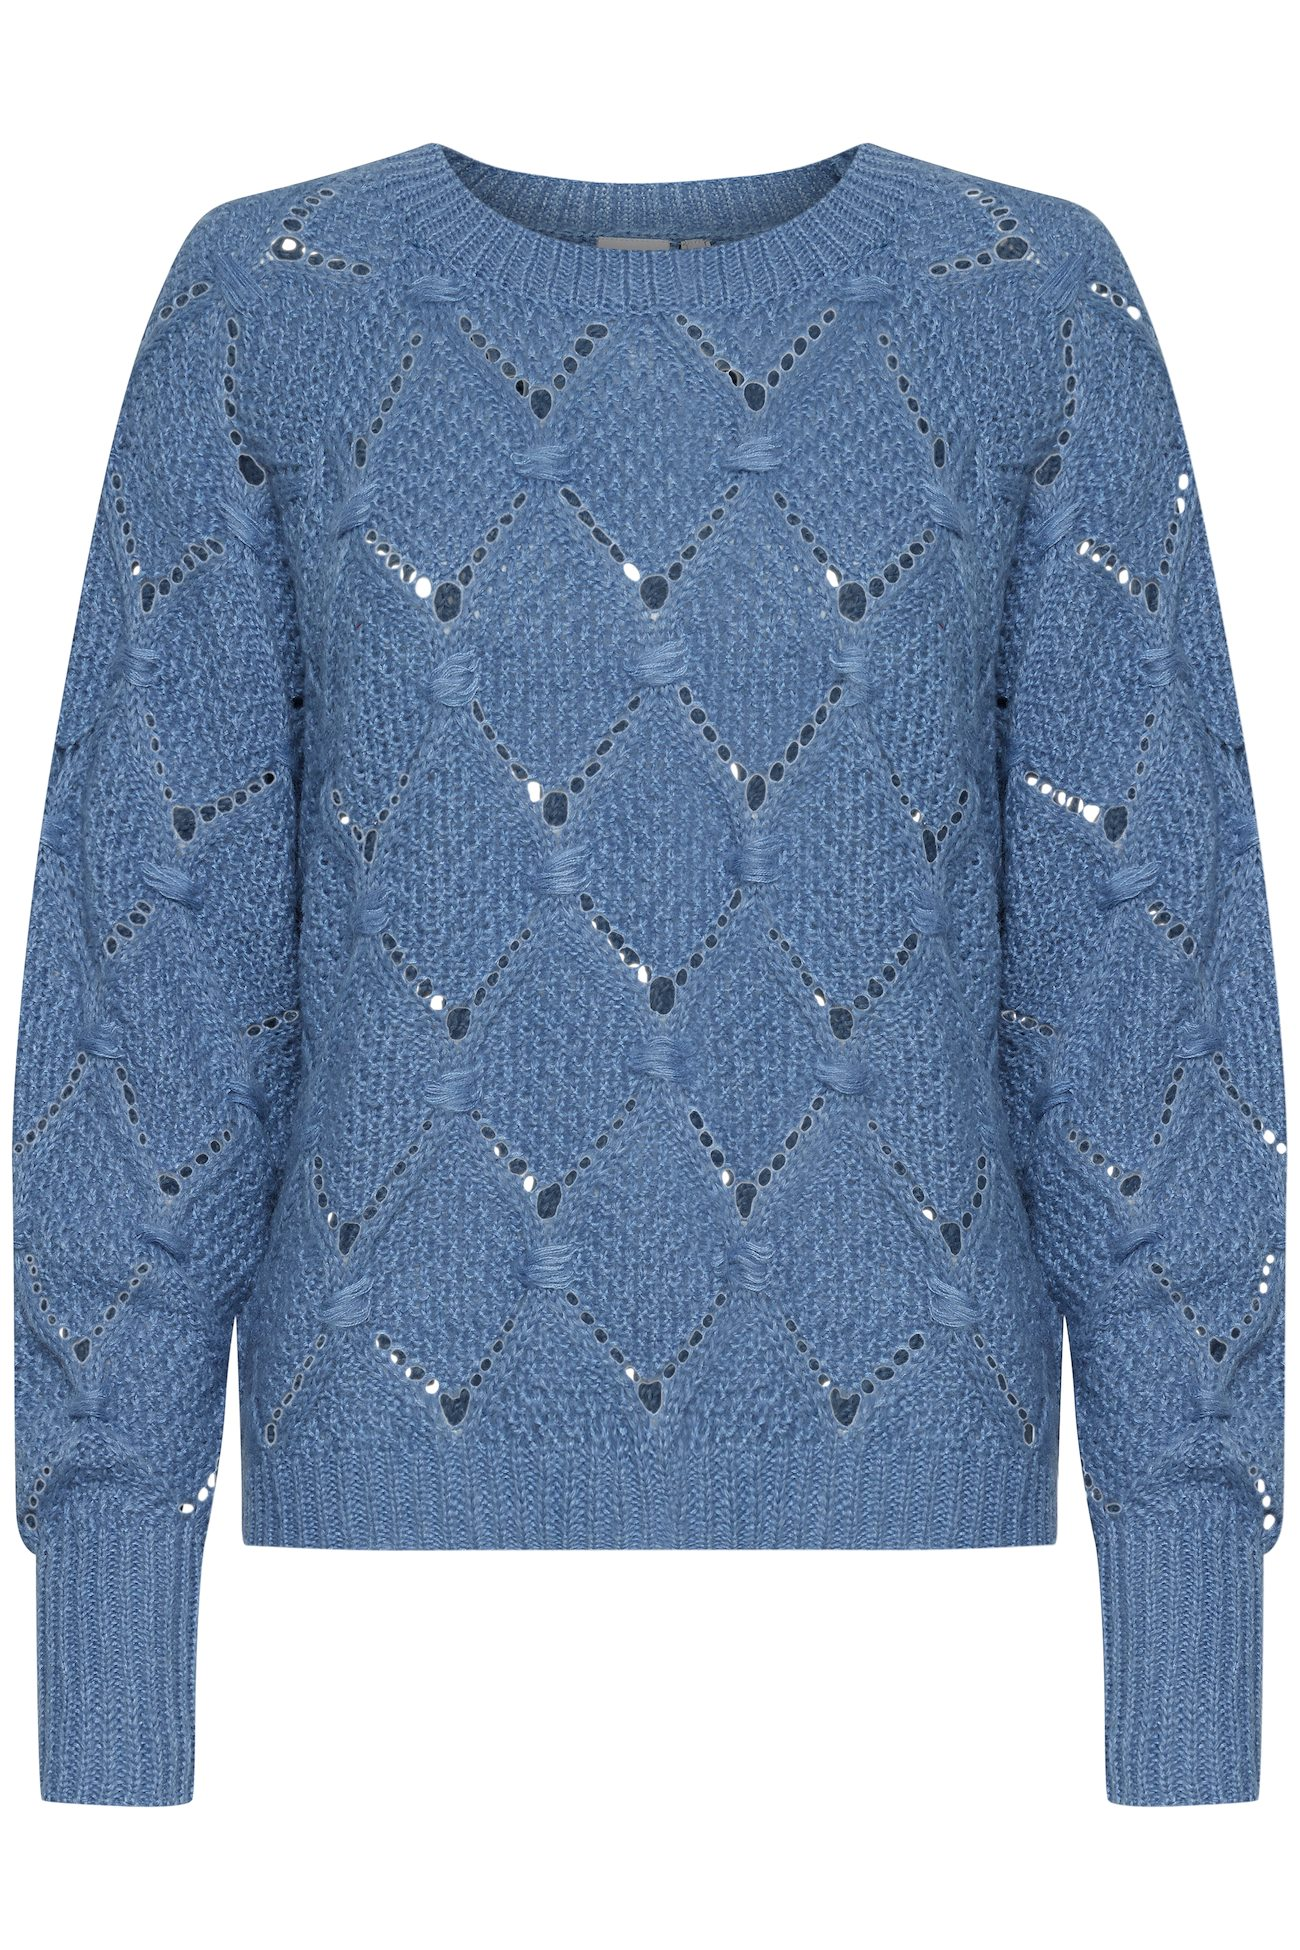 riviera-knitted-pullover